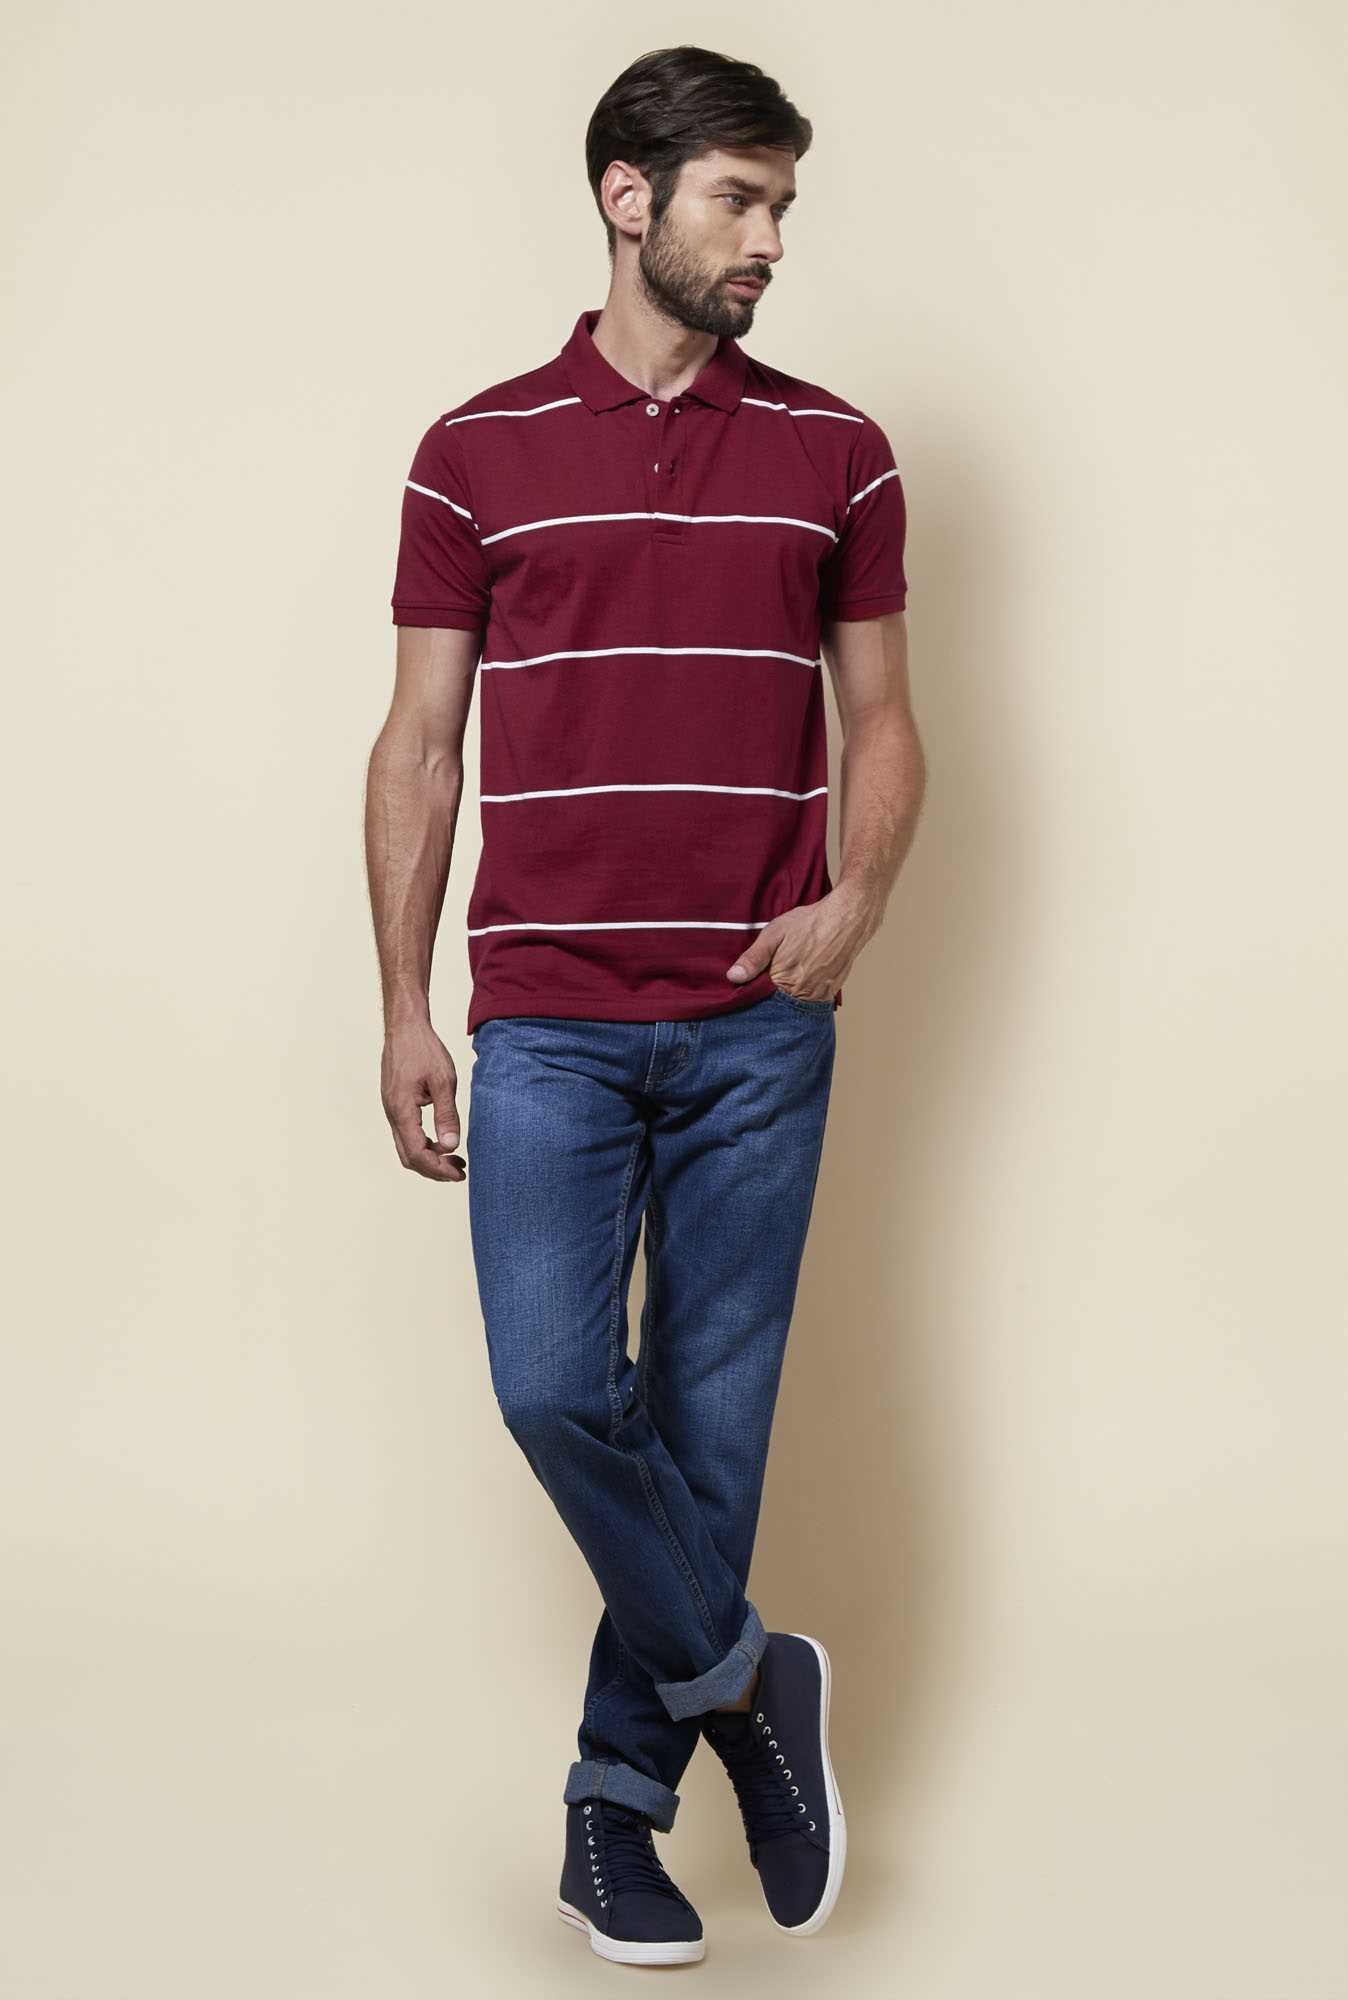 Zudio Maroon Polo T Shirt